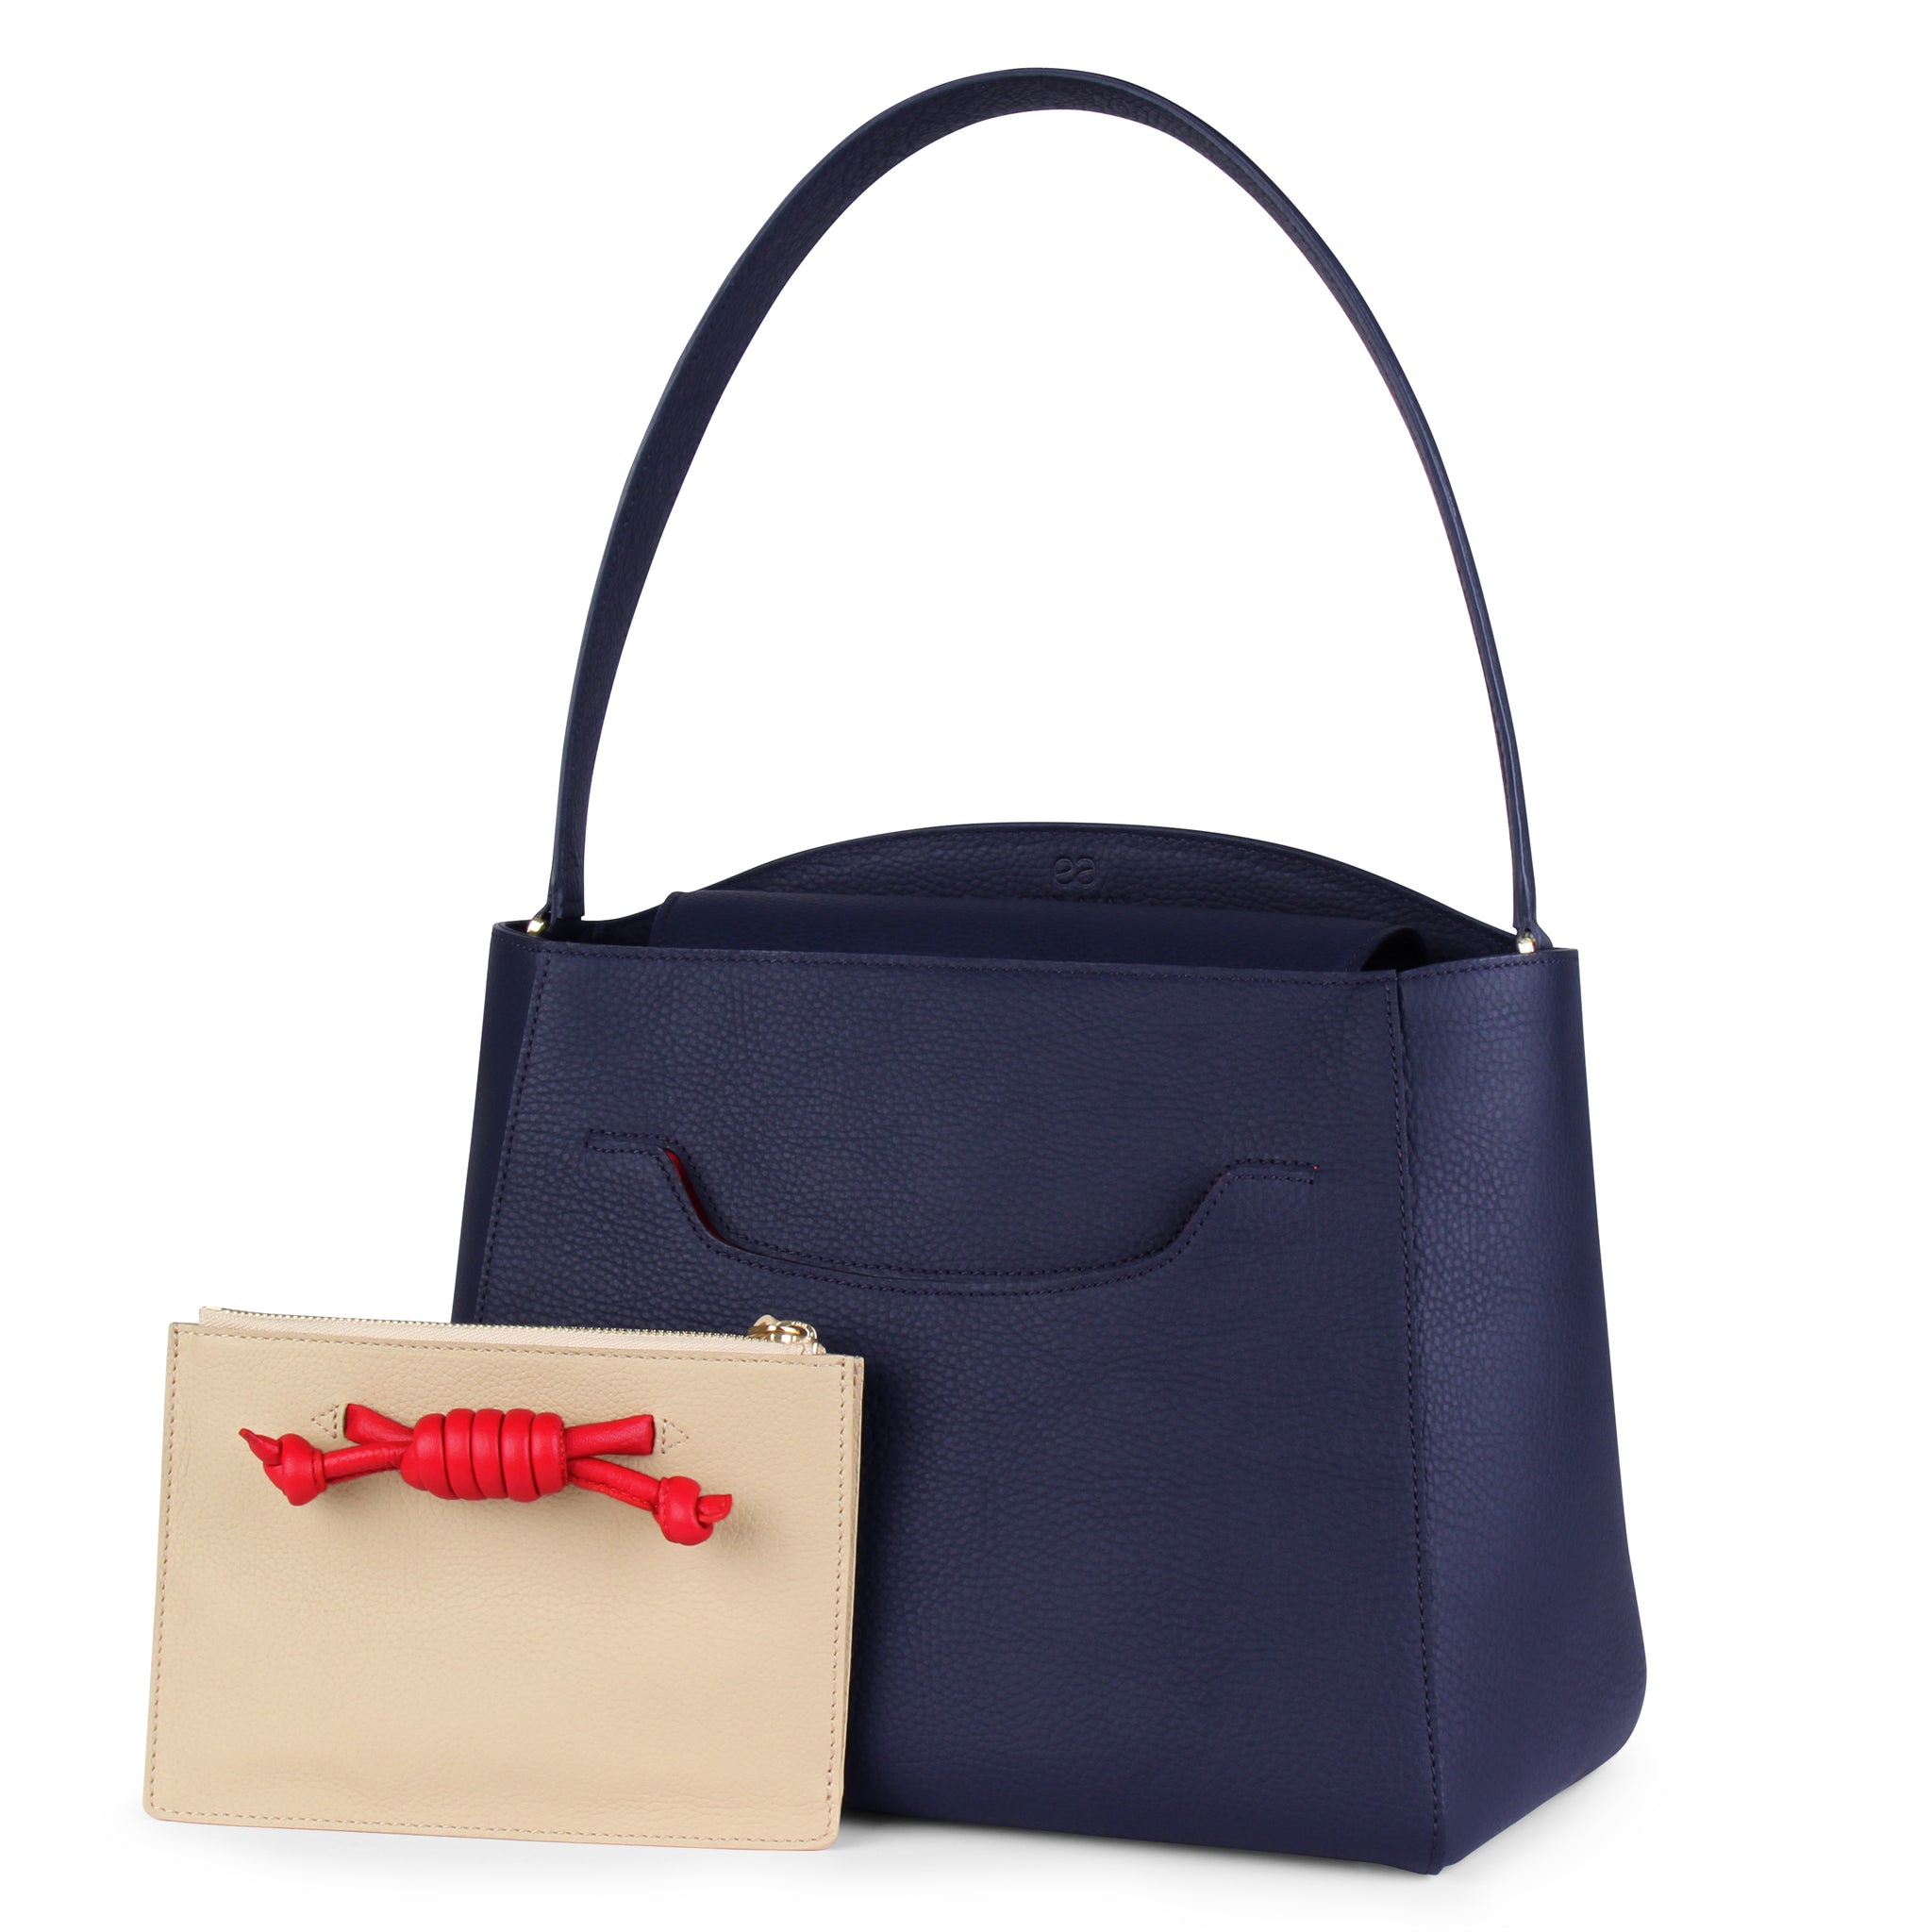 A navy convertible leather tote bag for work with a red and nude detachable clutch in front, front image.